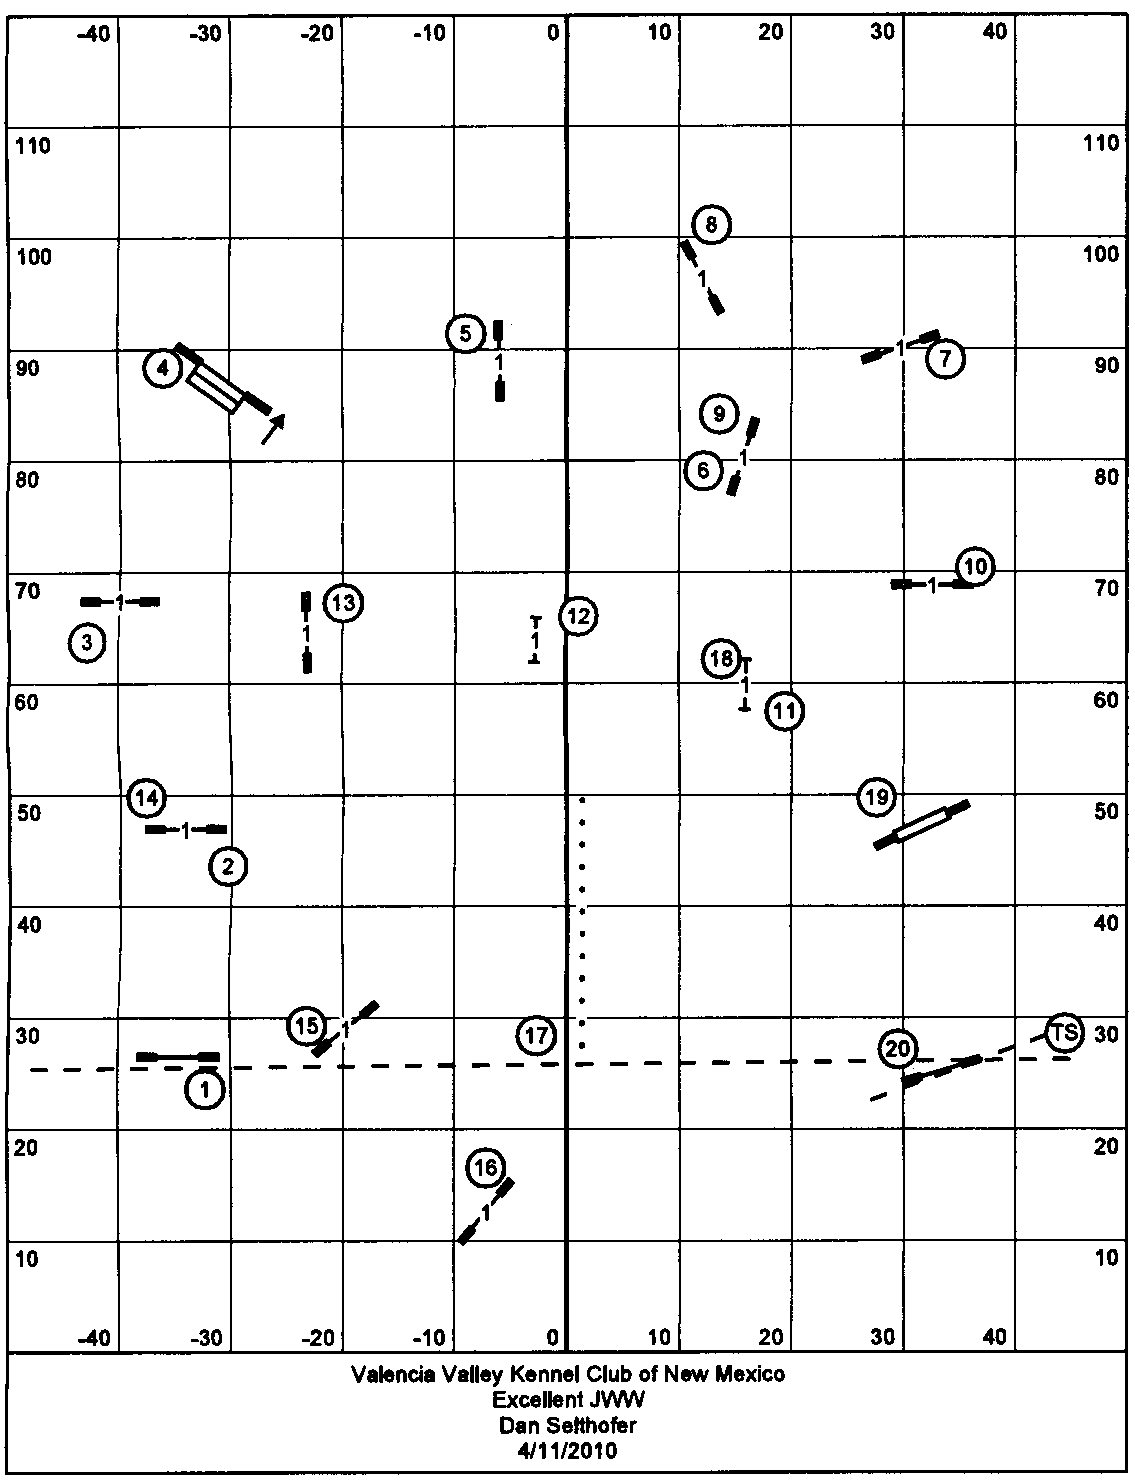 Novice Agility Course Maps http://www.dogforums.com/dog-sports-show-forum/81904-agility-course-map-analysis-2.html